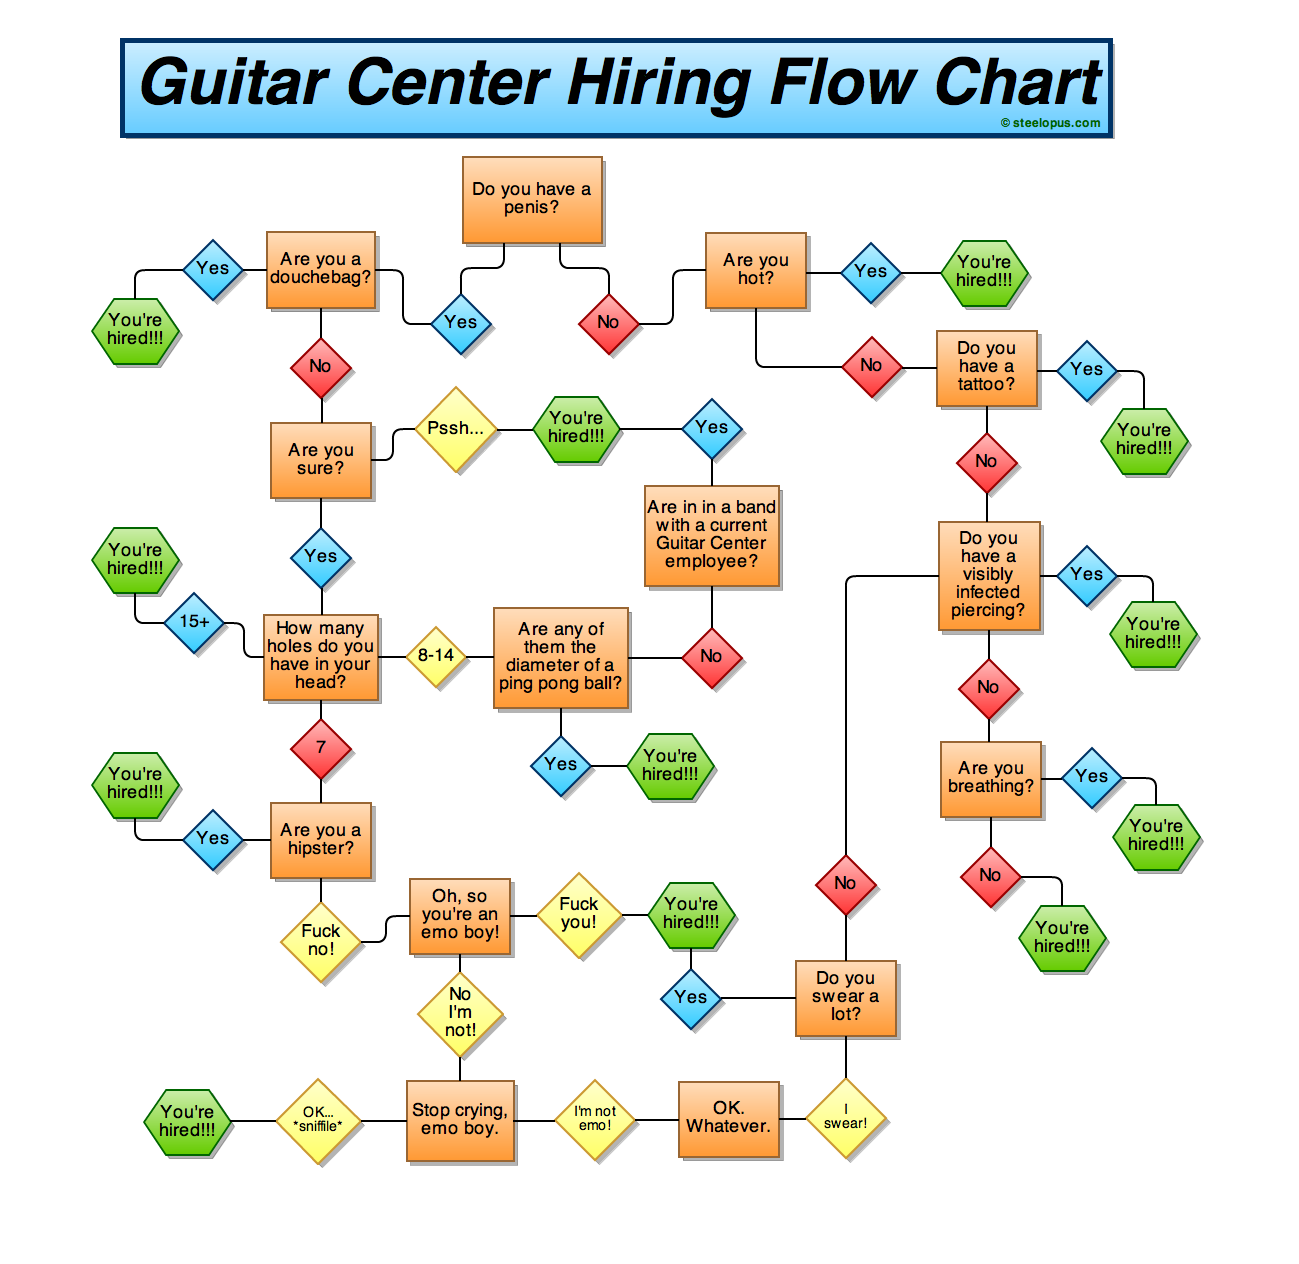 Steelopus guitar center hiring flow chart seven 9s and 10s high res steelopus guitar center hiring flow chart bysteelopus i uncovered this secret guitar nvjuhfo Gallery